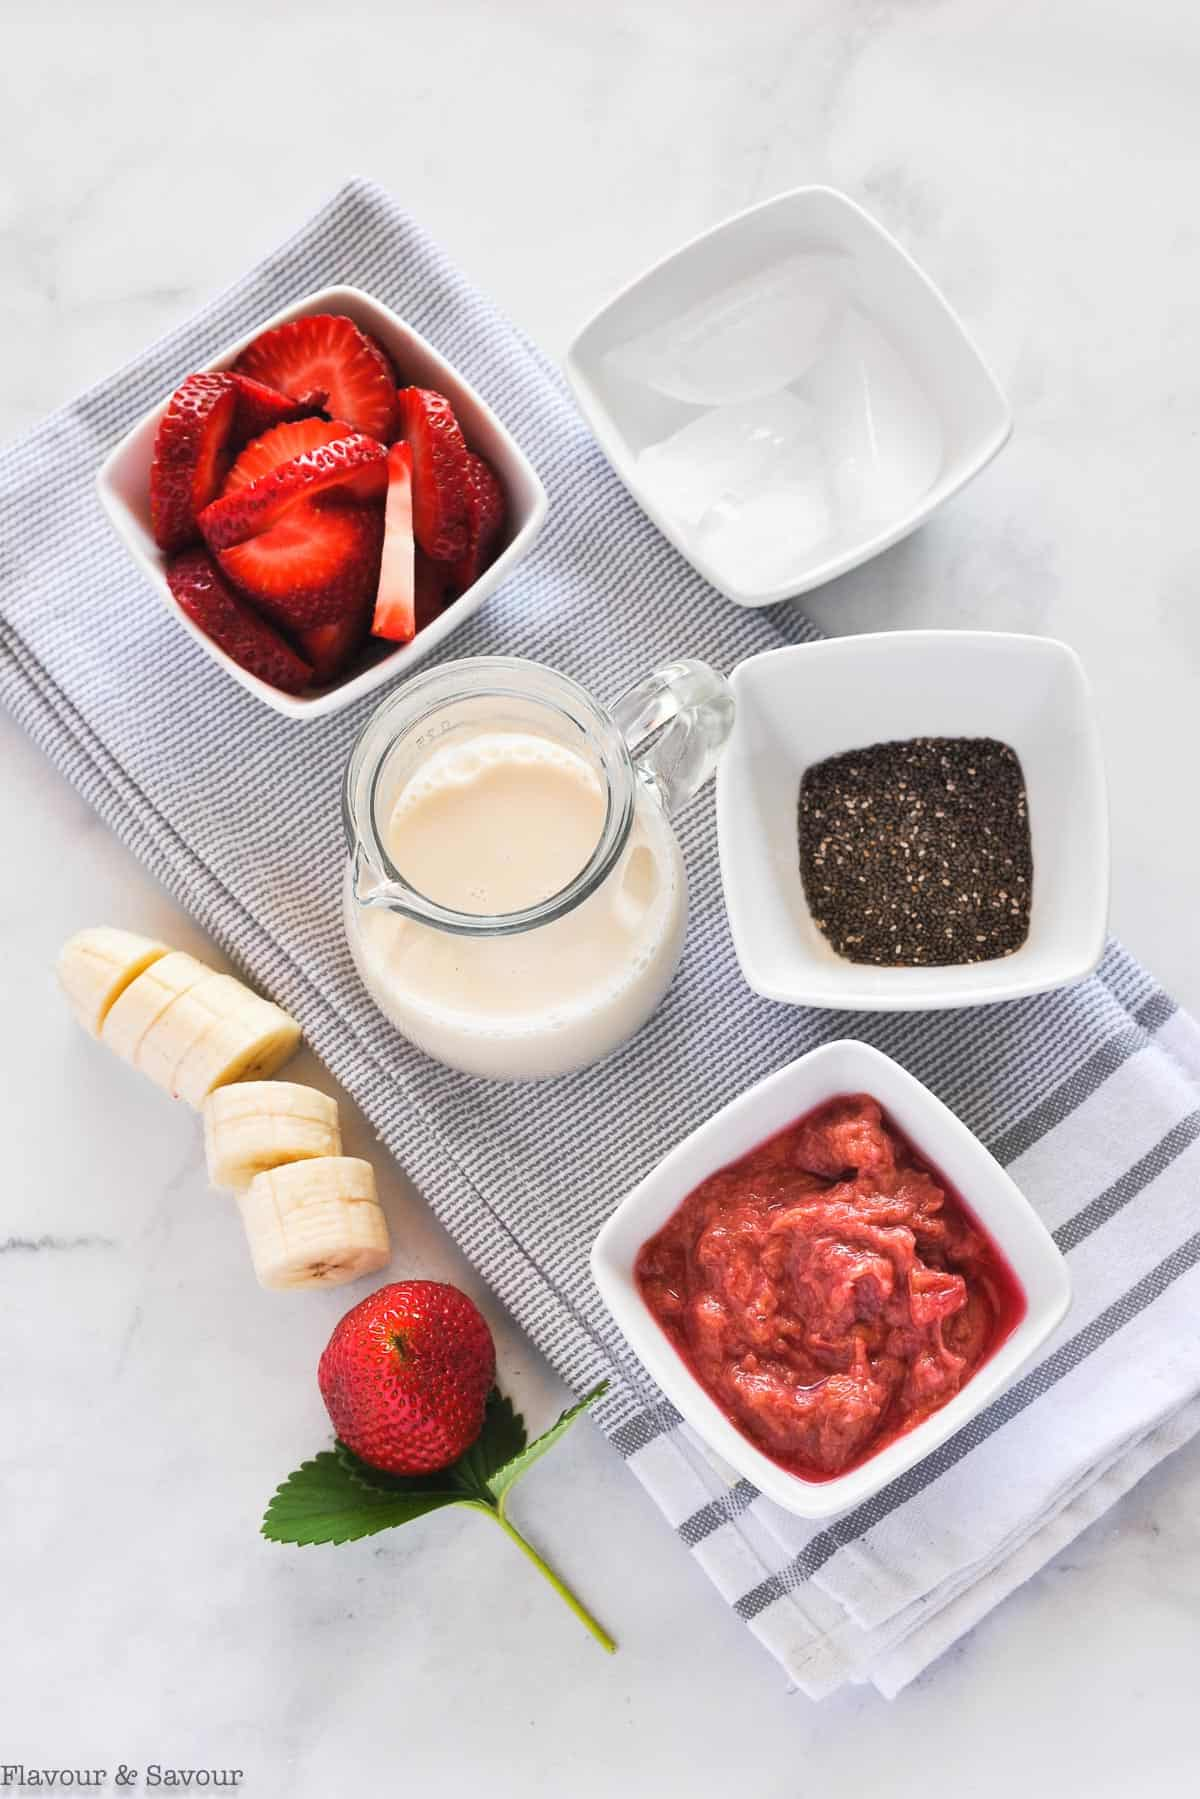 Ingredients for Strawberry Rhubarb Smoothie